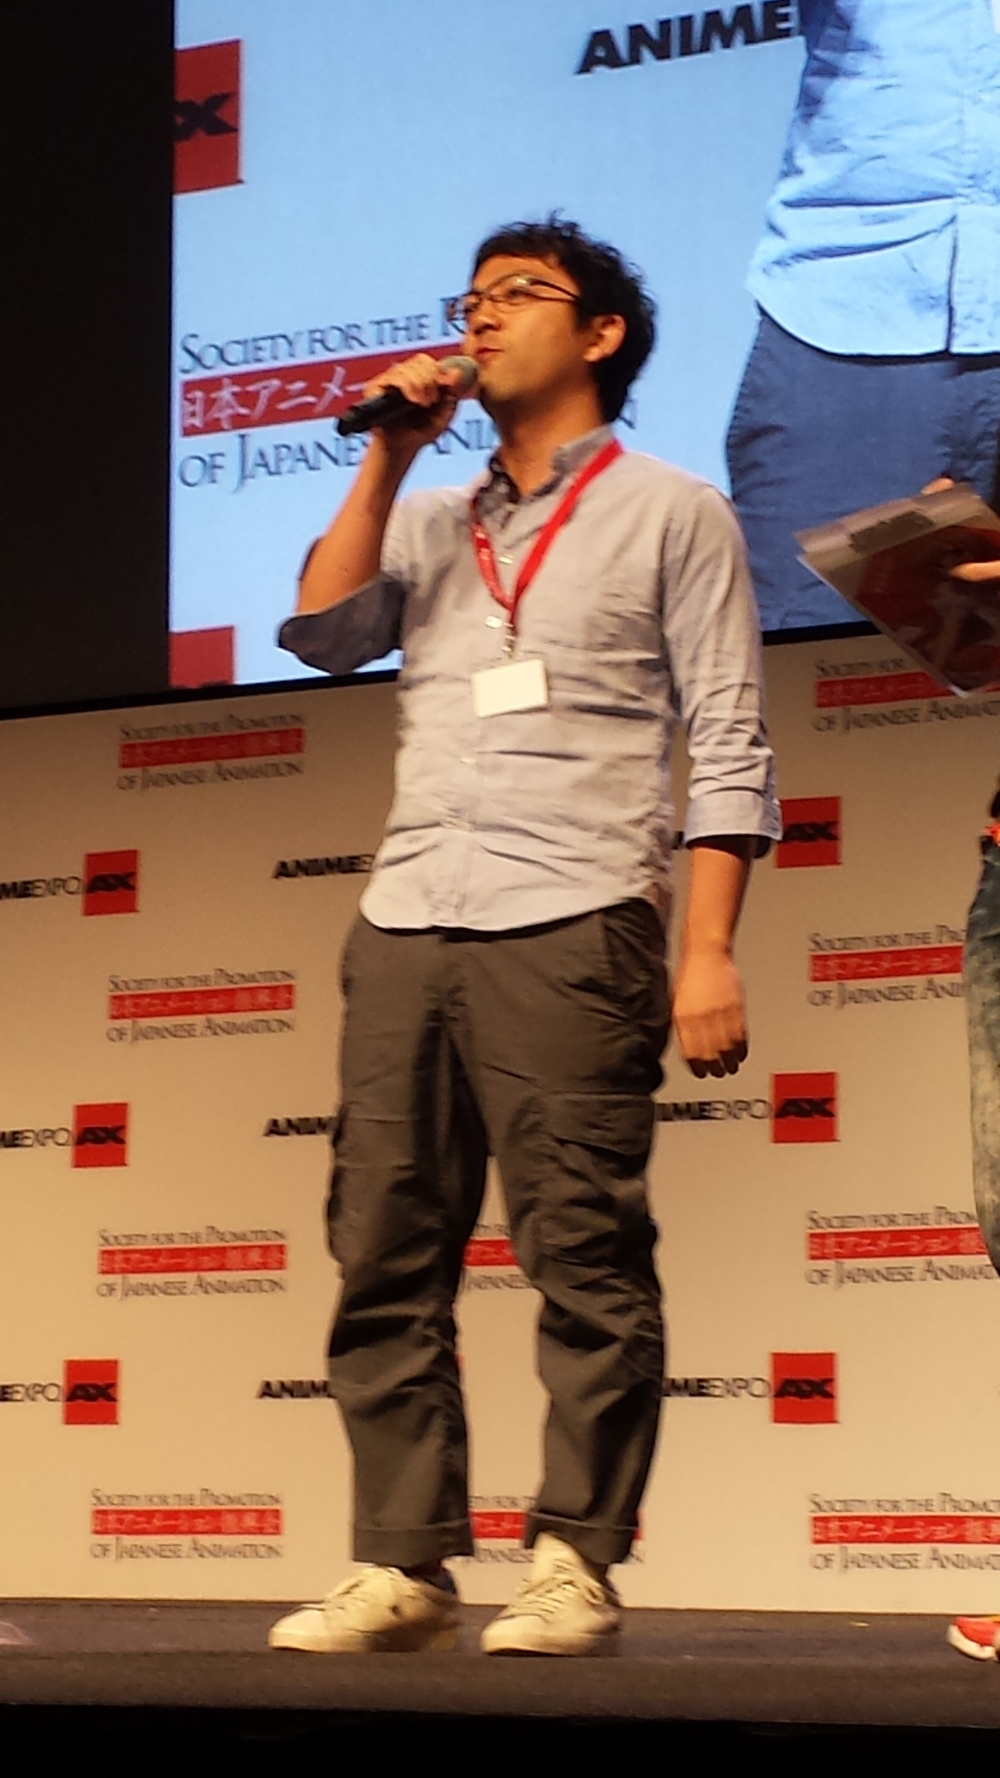 AnimeExpo 2013 - George Wada at closing ceremonies